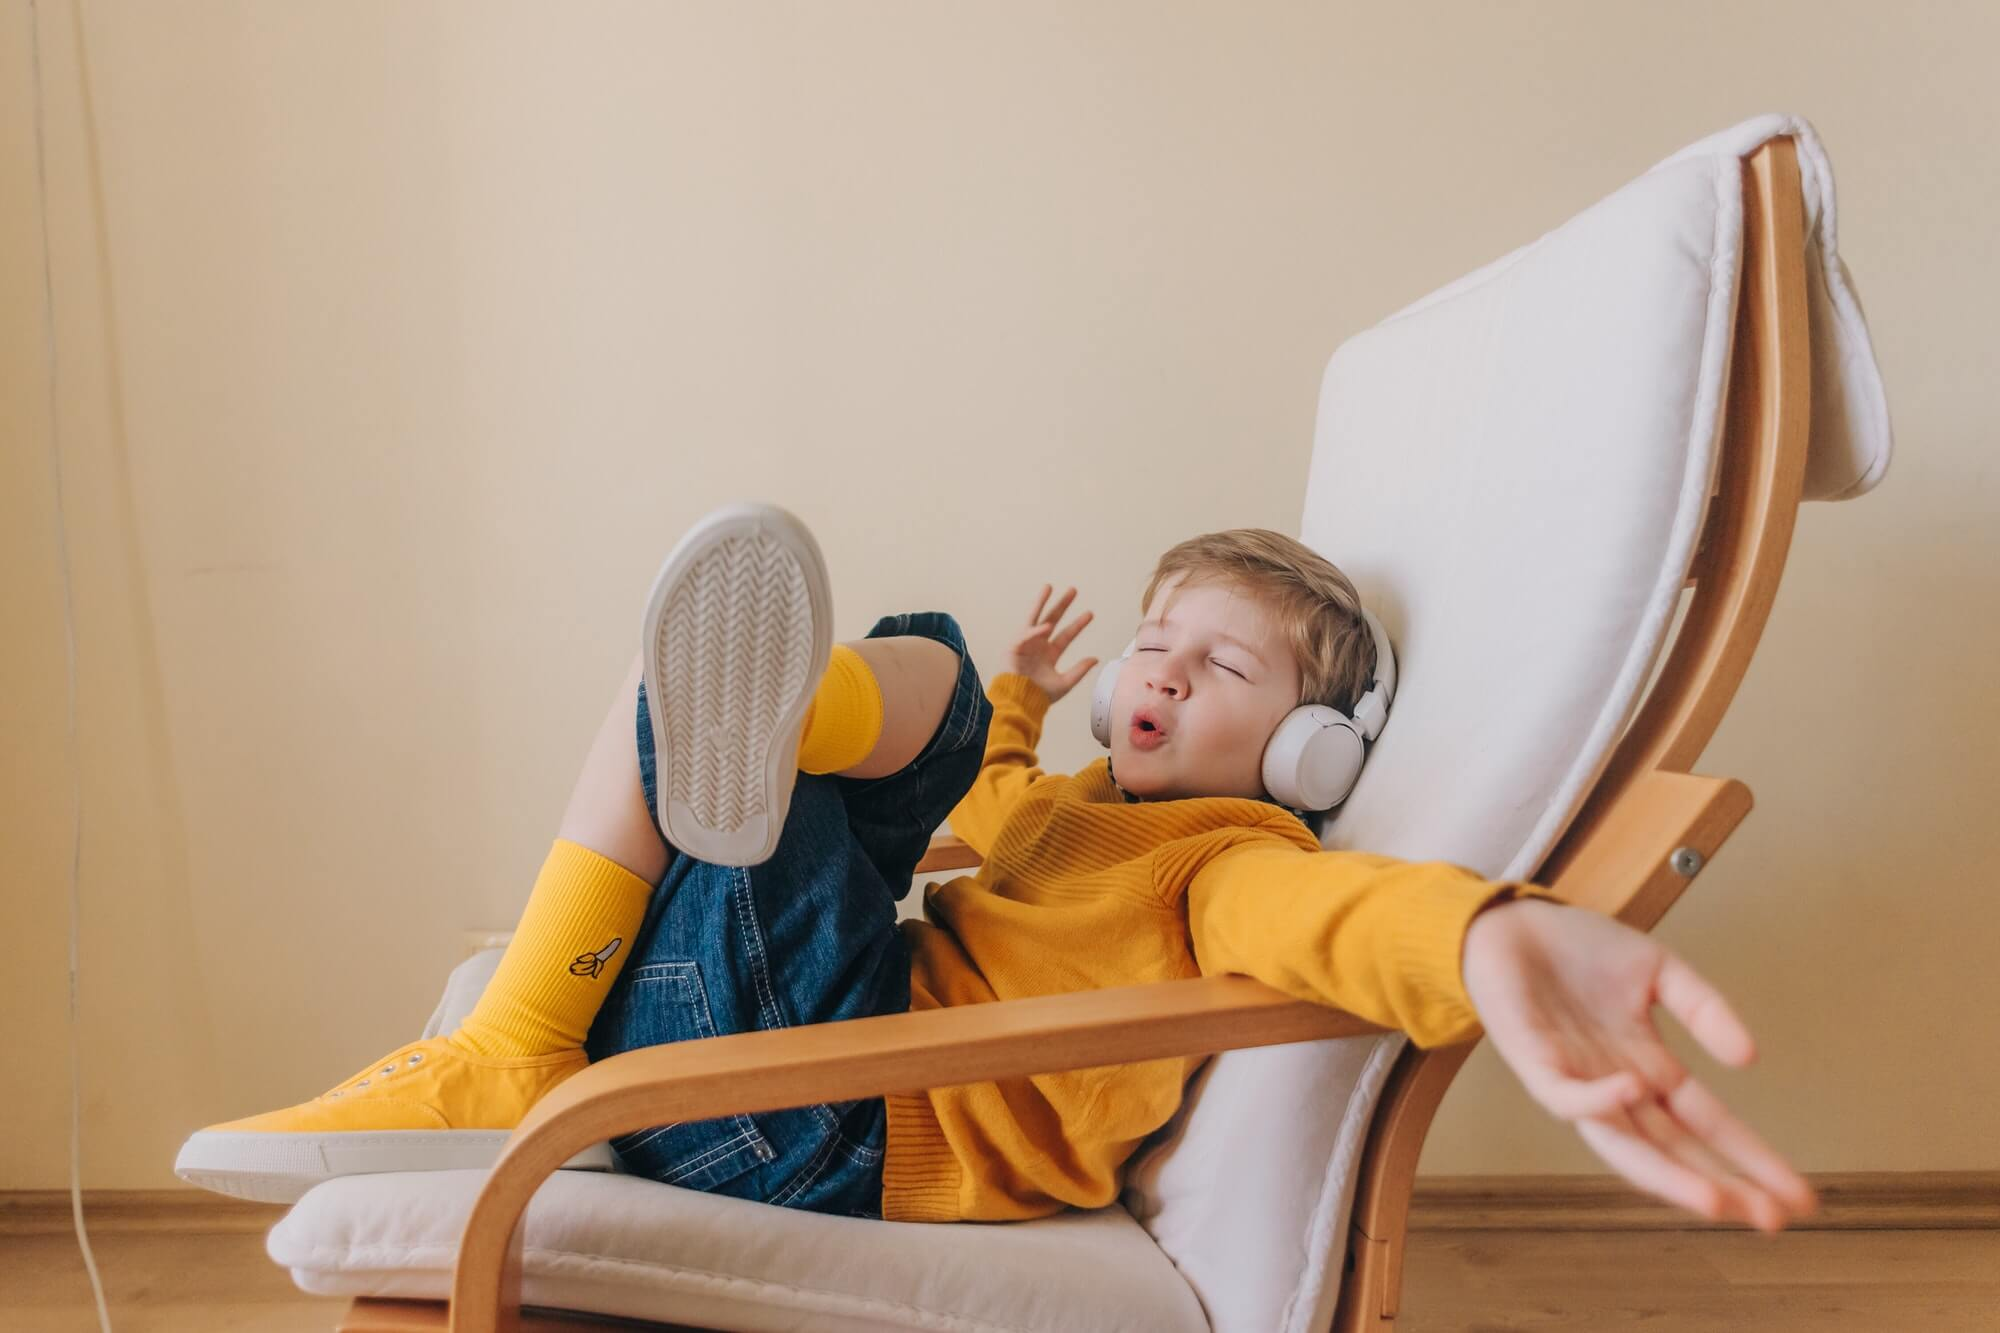 Emotional boy in yellow sneakers, with headphones.